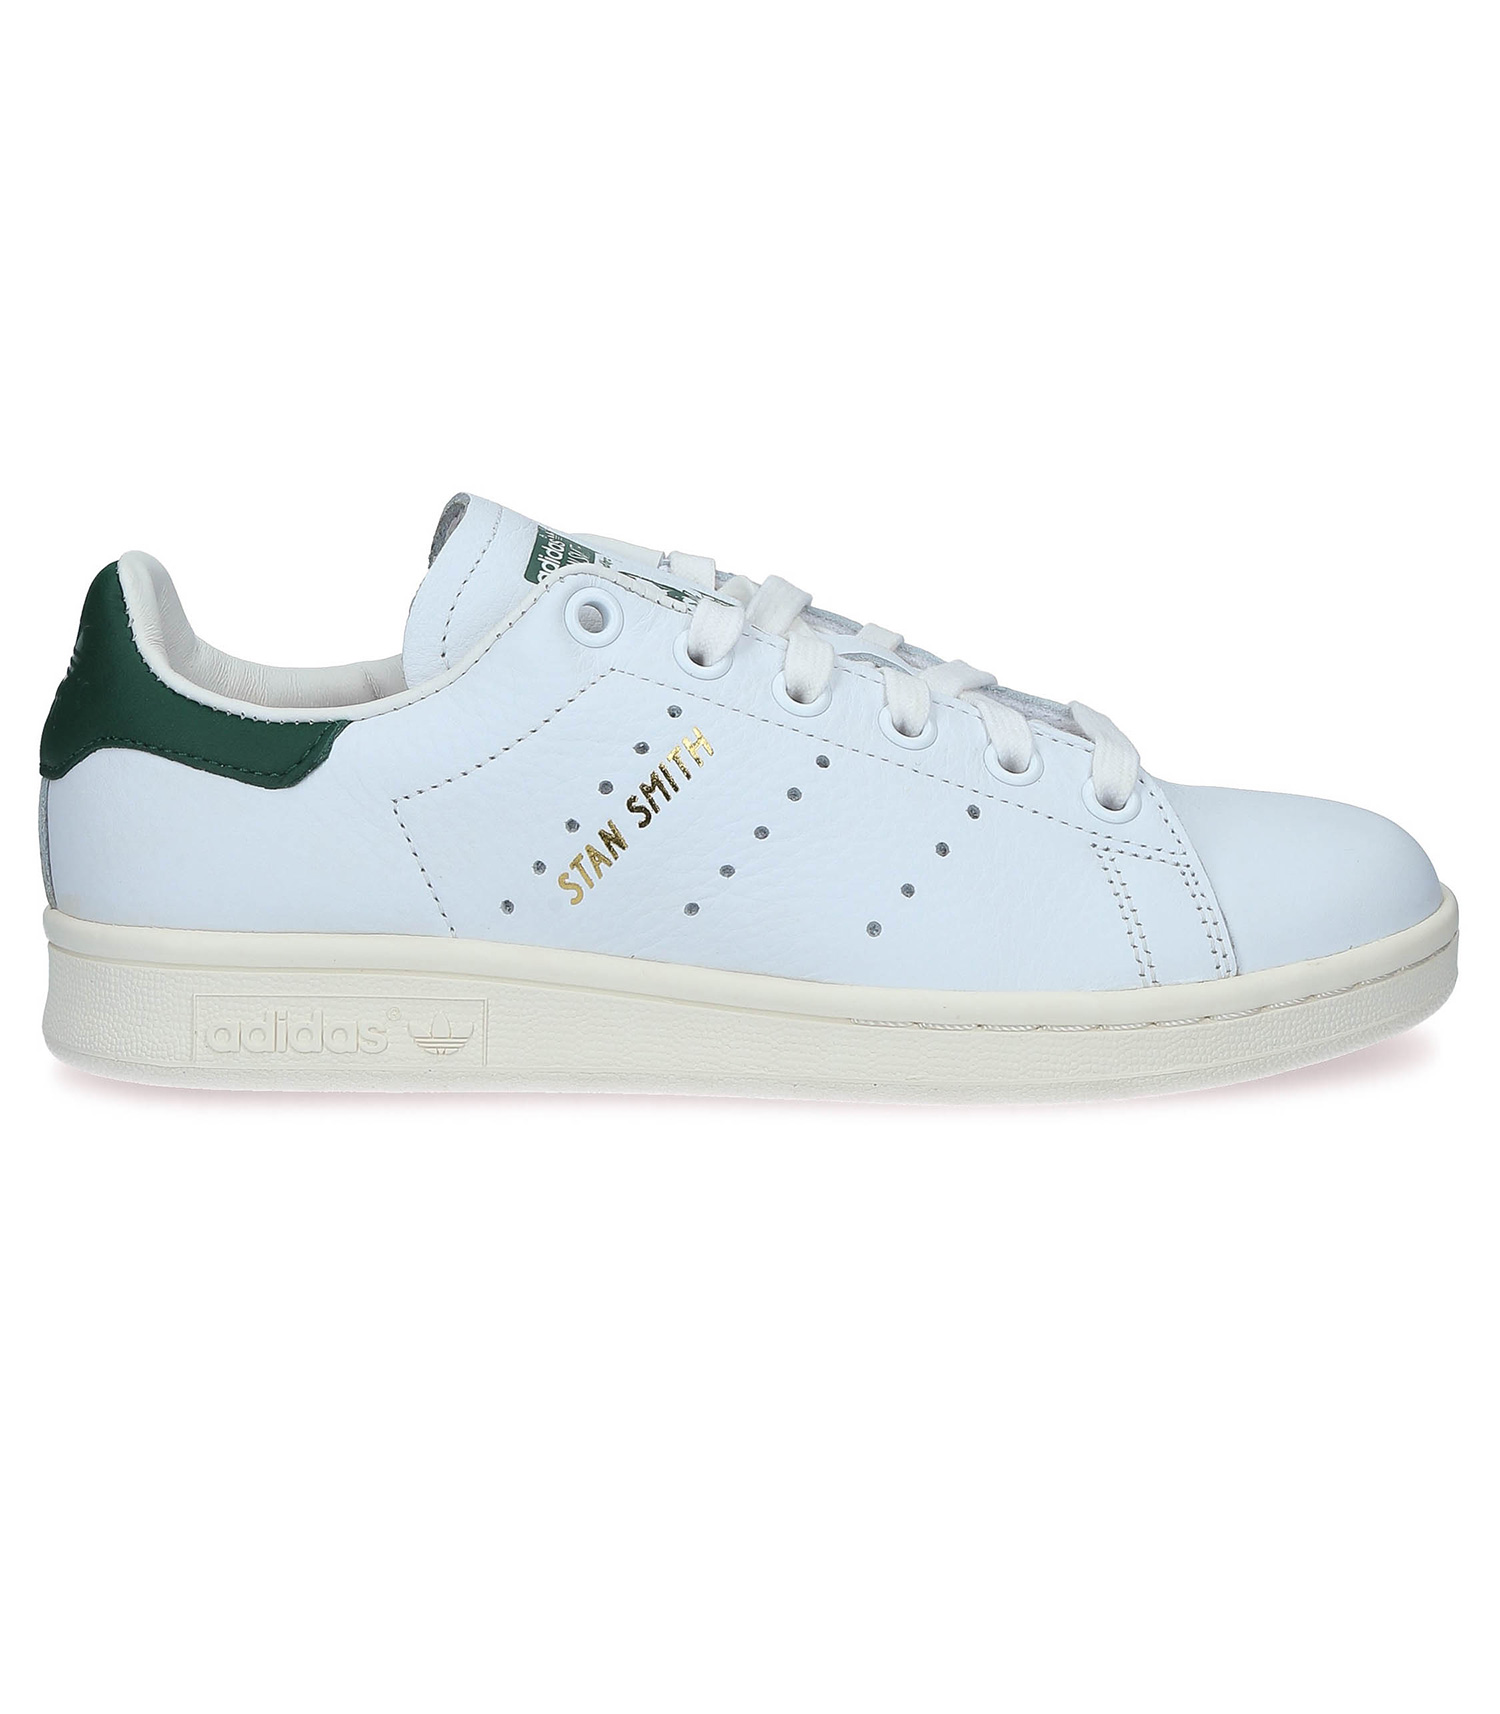 Sneakers Stan Smith BlancVert adidas Originals Jane de Boy